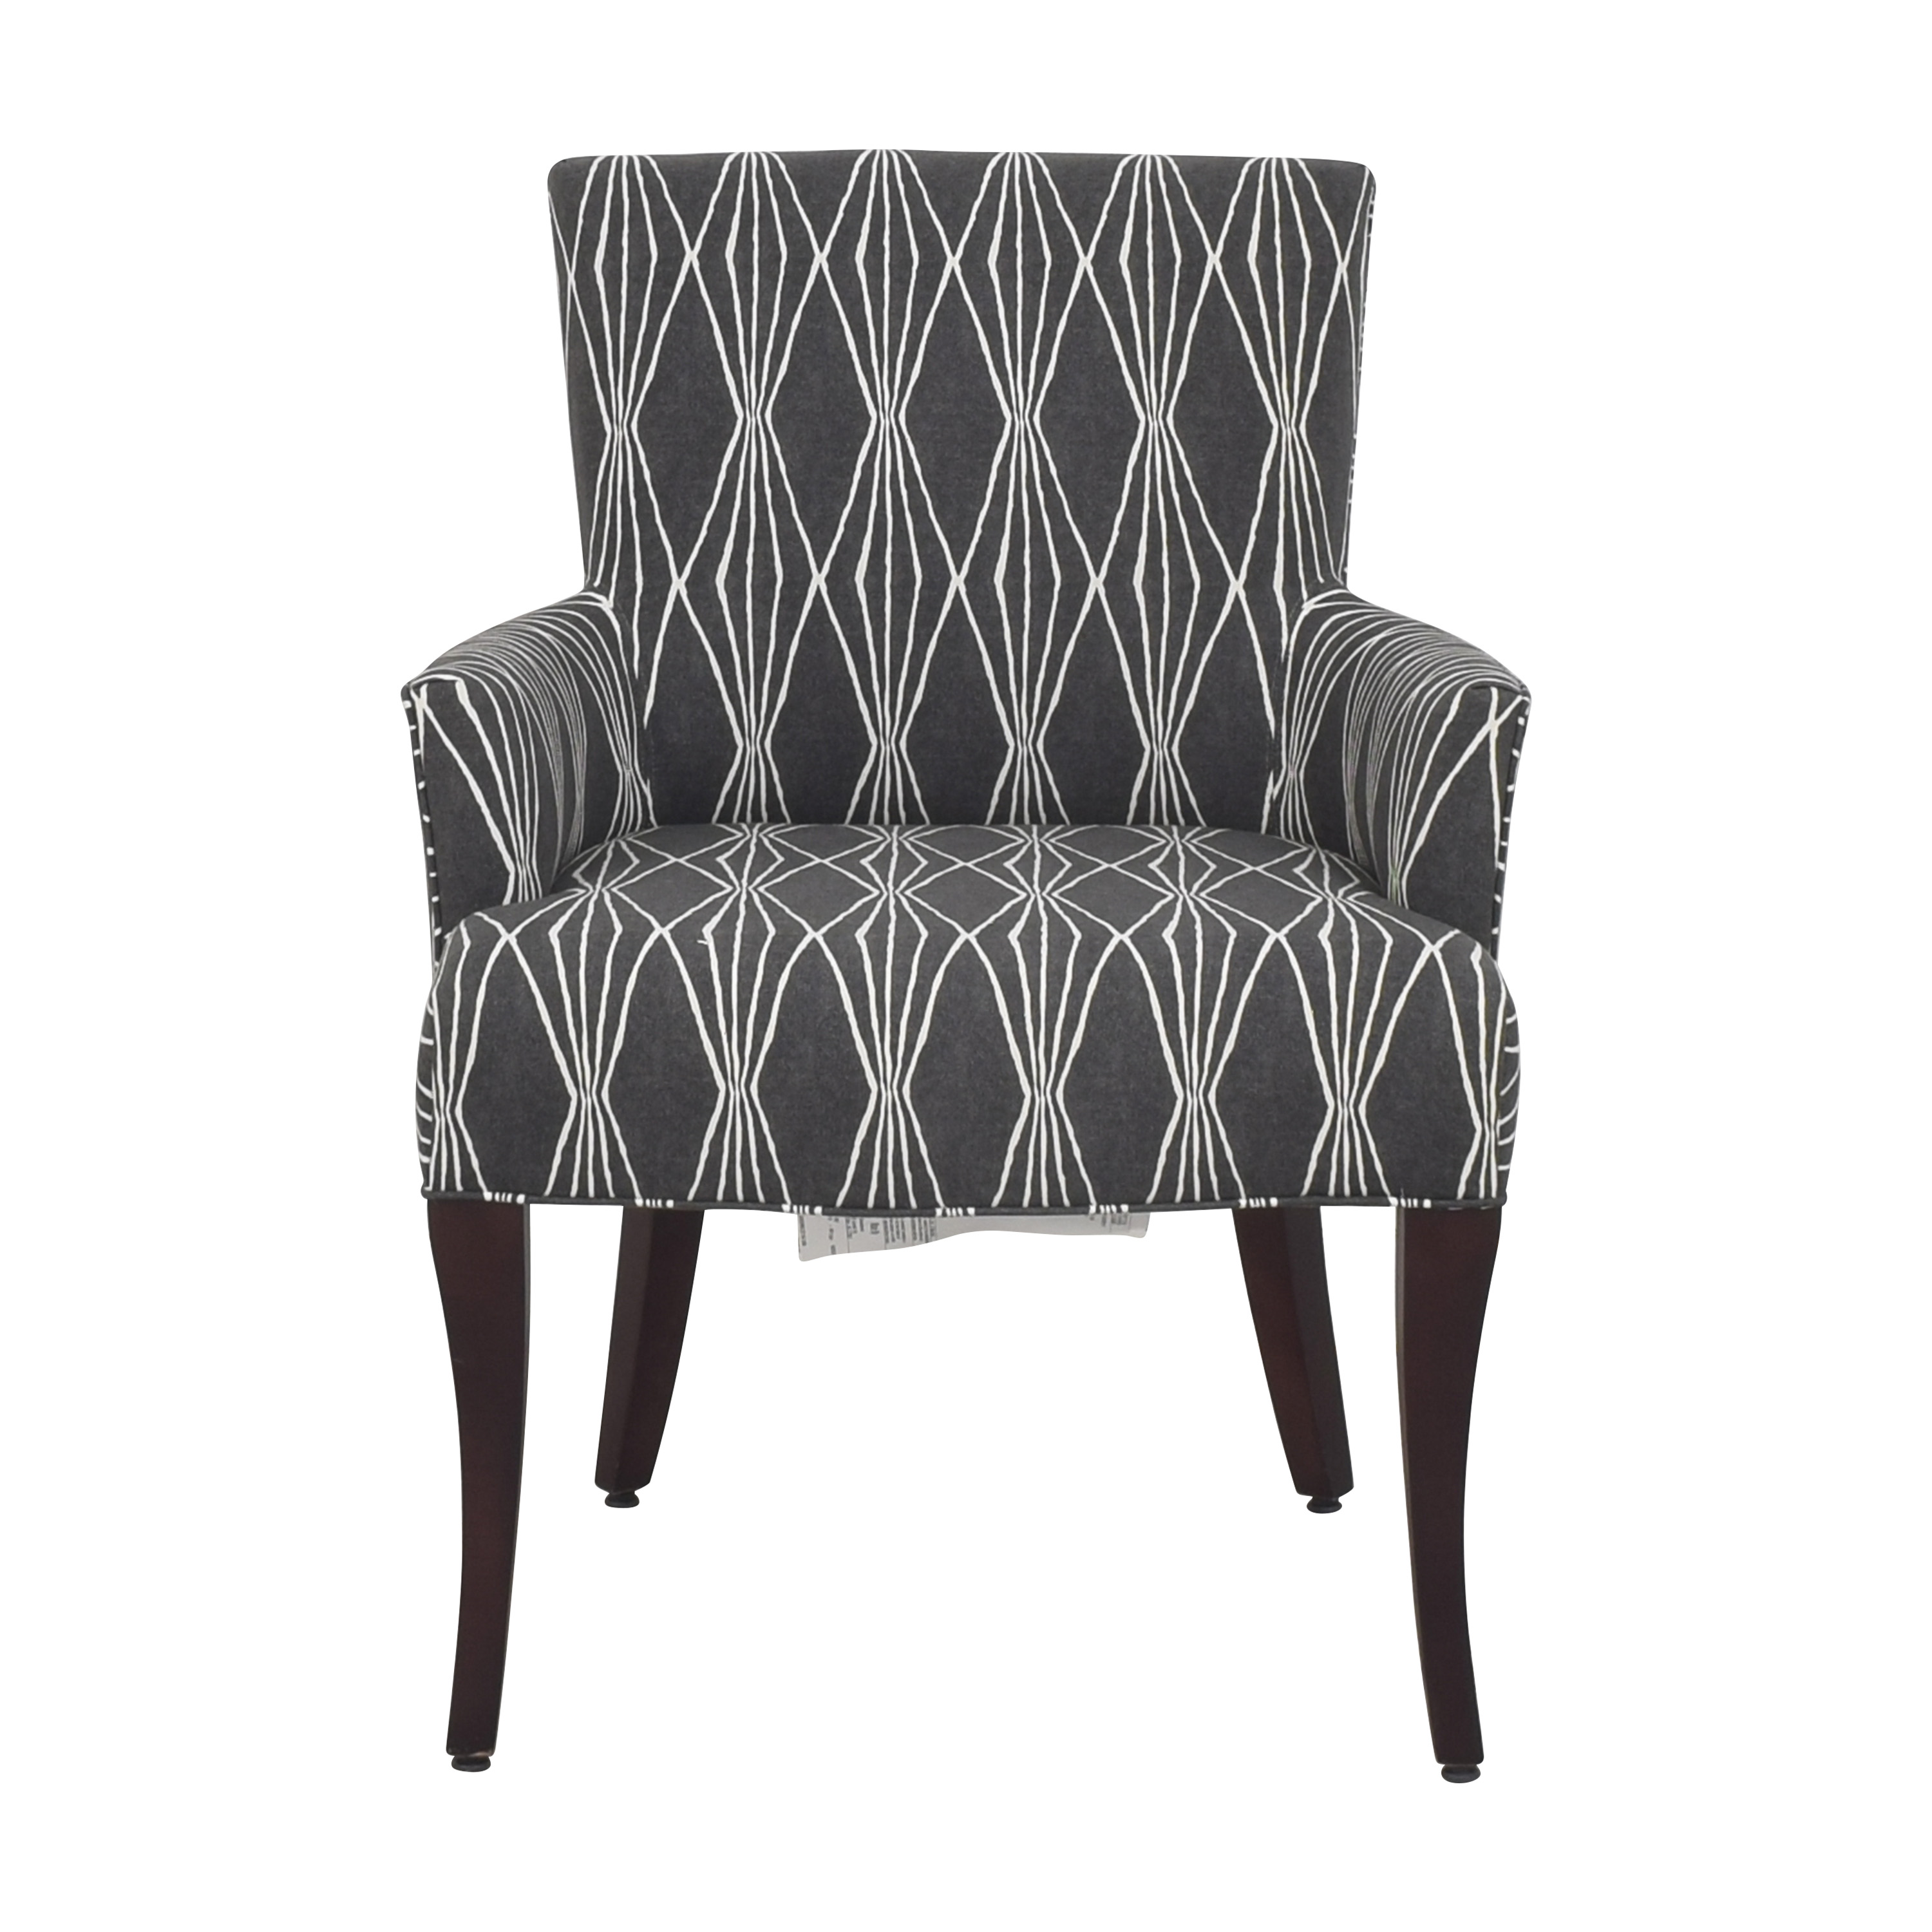 Hekman Furniture Hekman Furniture Brooke Armchair Accent Chairs